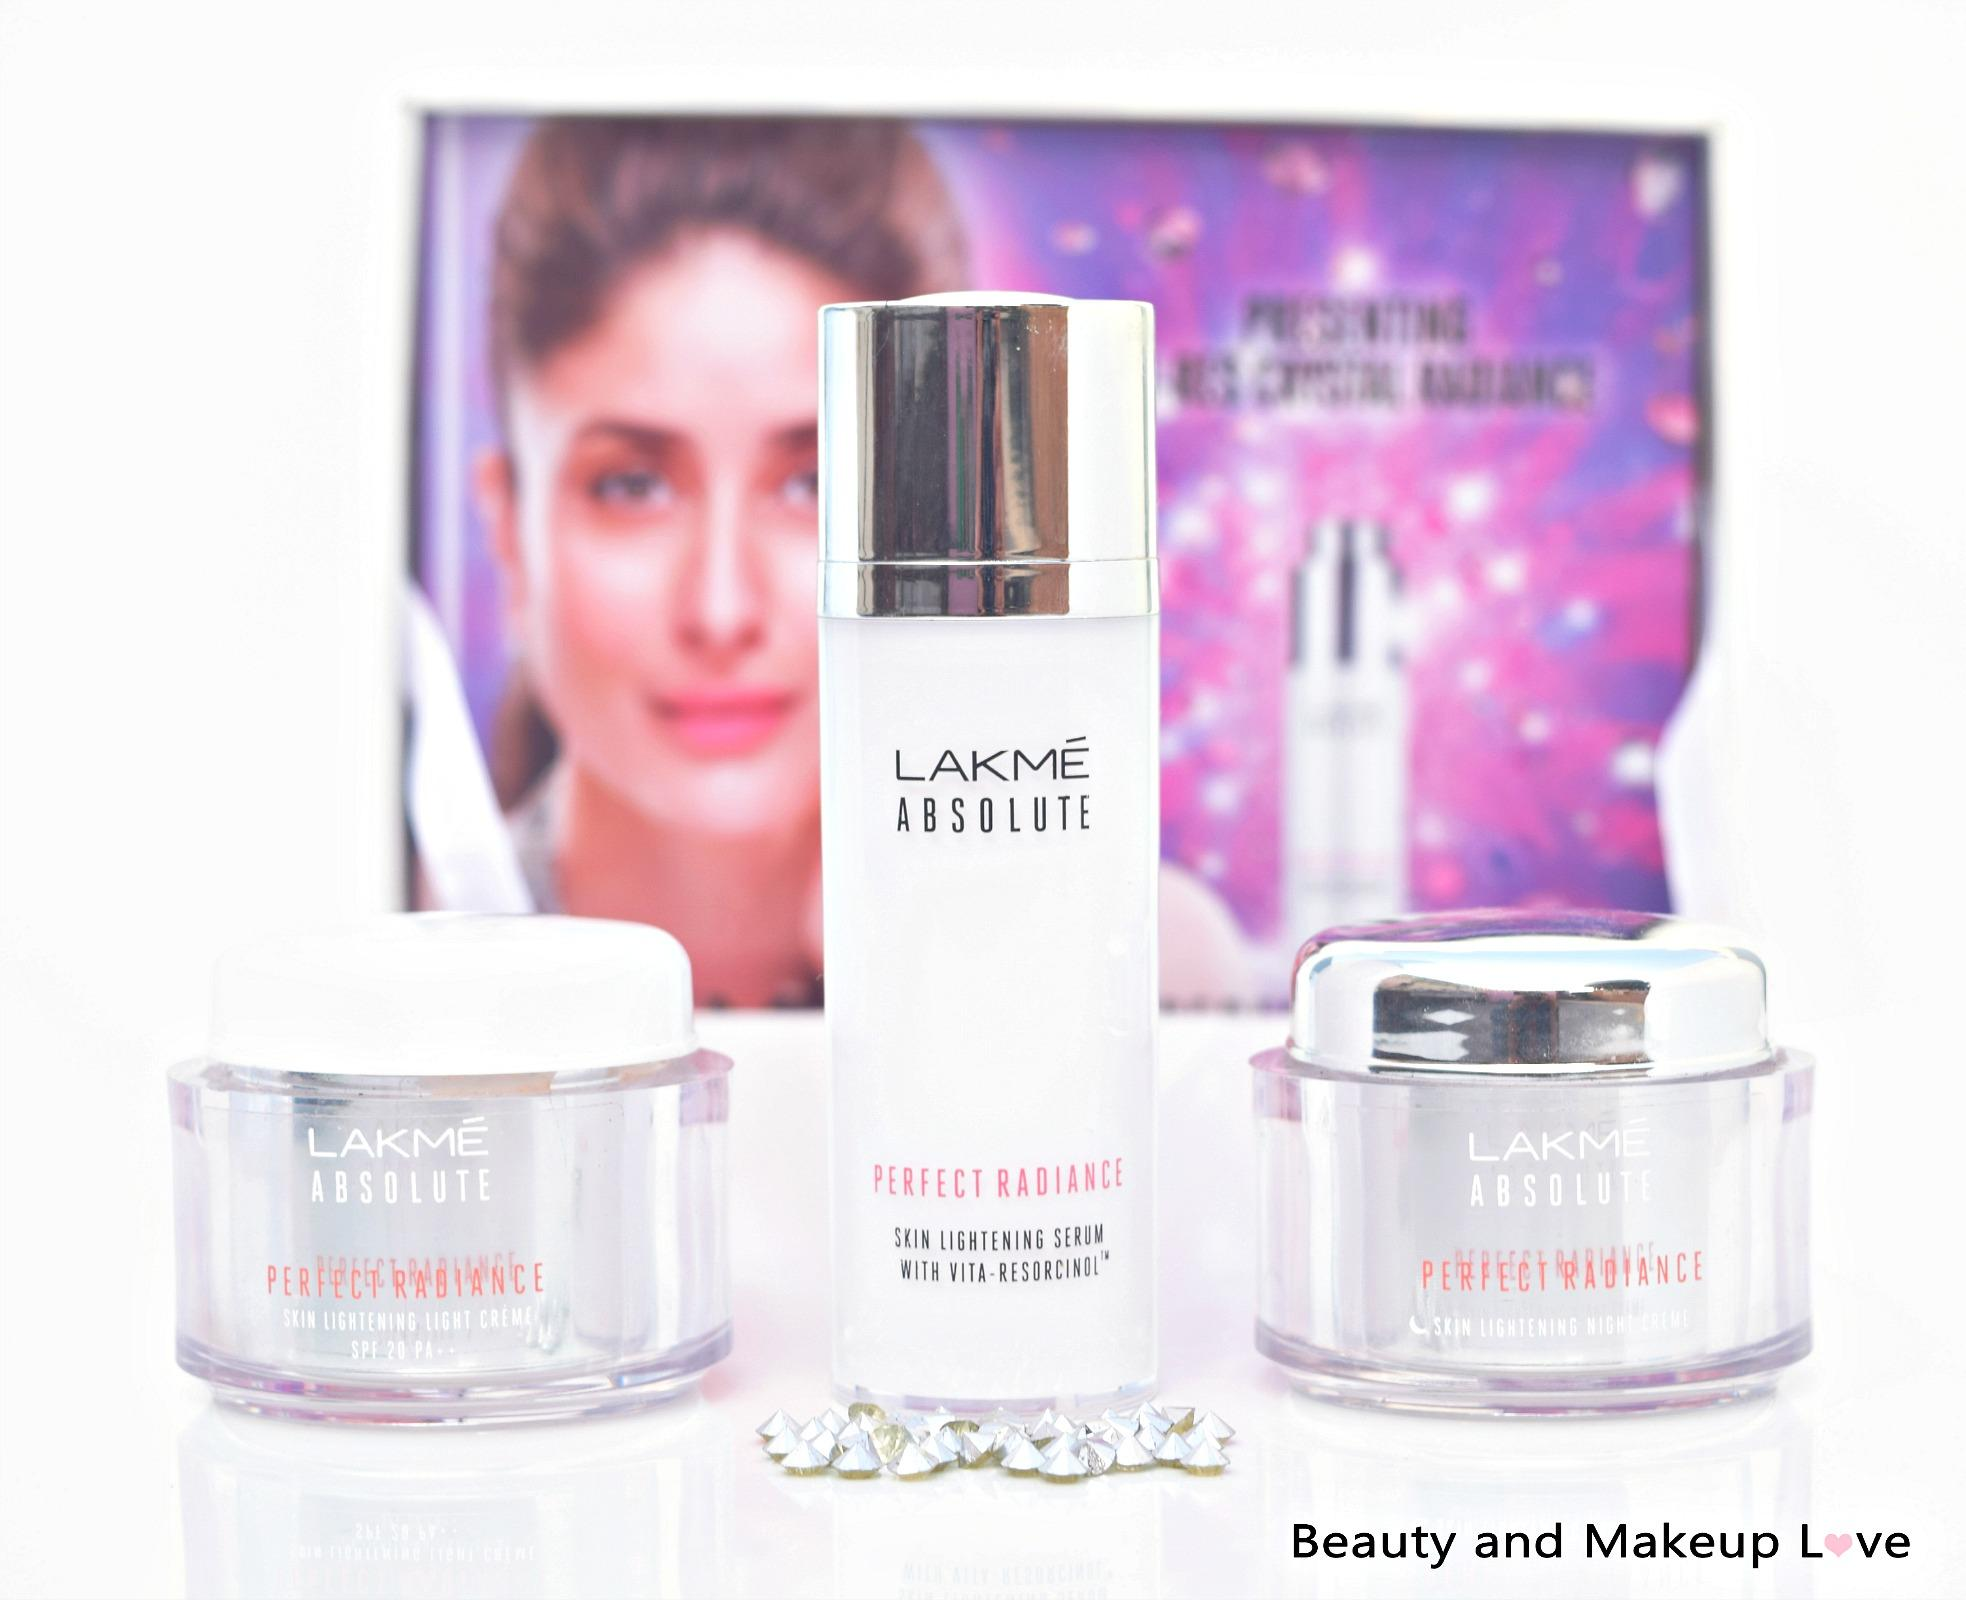 lakme absolute perfect radiance range serum light night cream. Black Bedroom Furniture Sets. Home Design Ideas